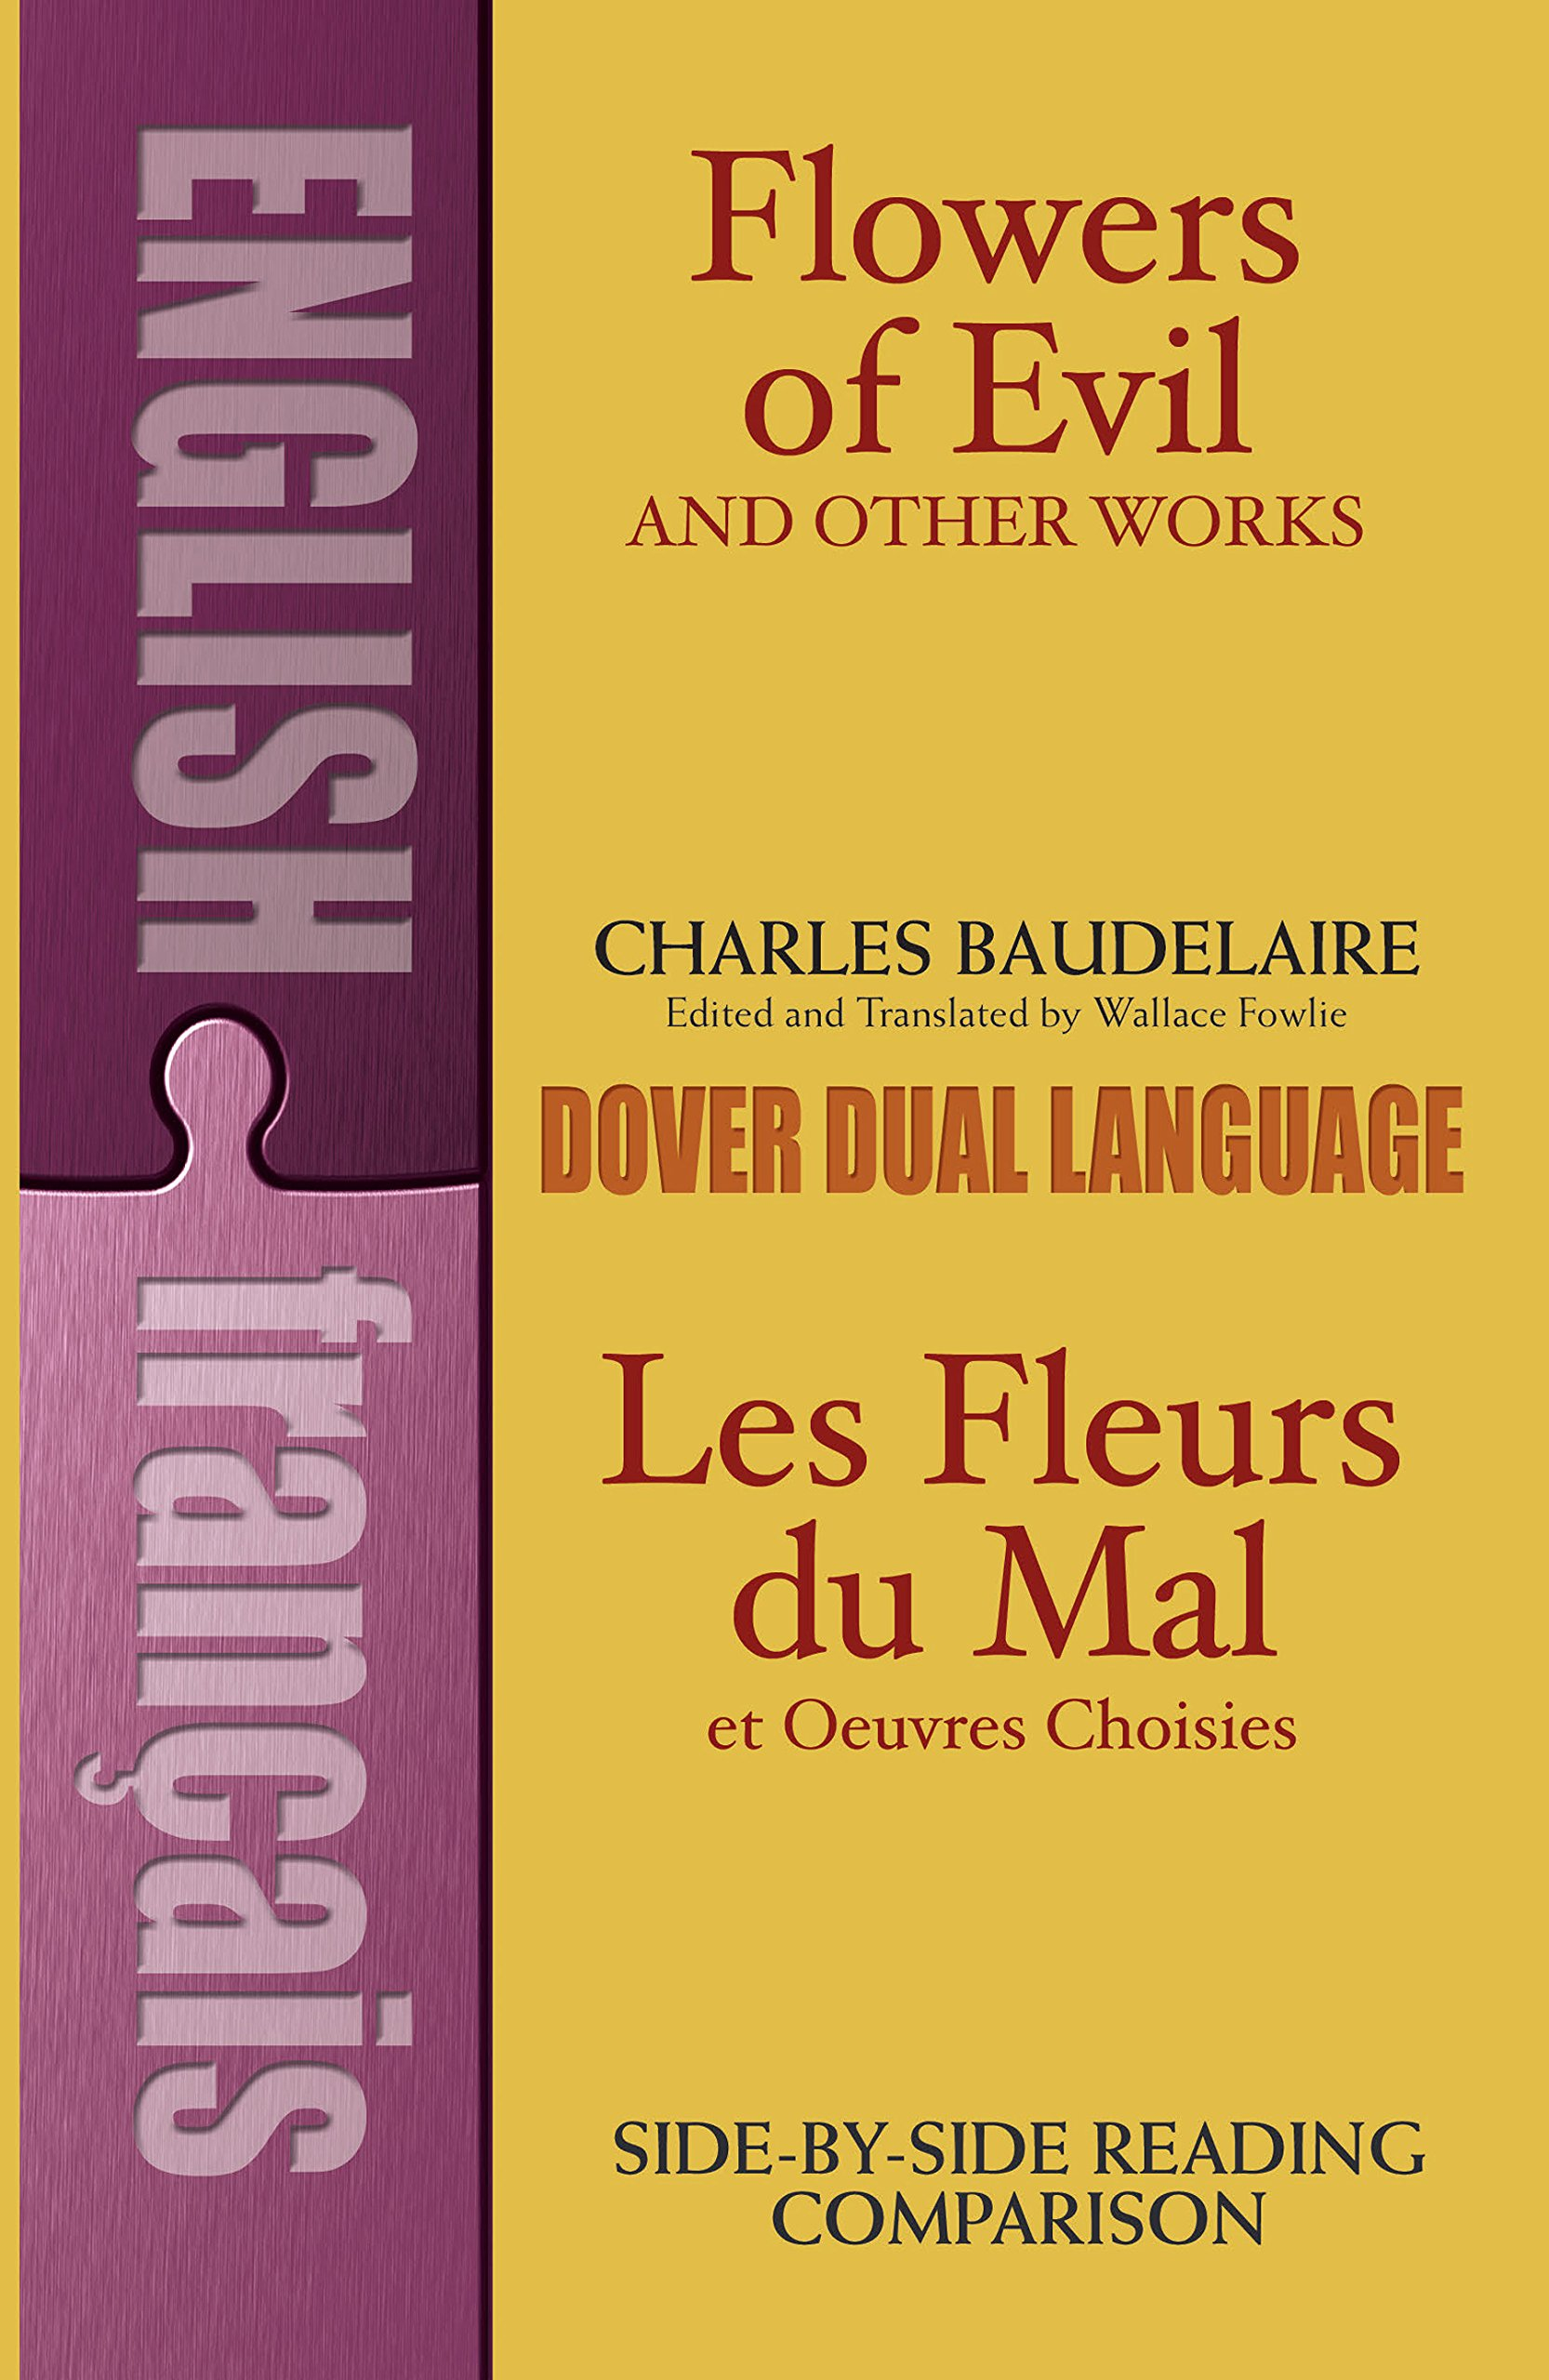 Flowers of Evil and Other Works/Les Fleurs du Mal et Oeuvres Choisies : A Dual-Language Book (Dover Foreign Language Study Guides) (English and French Edition) by imusti